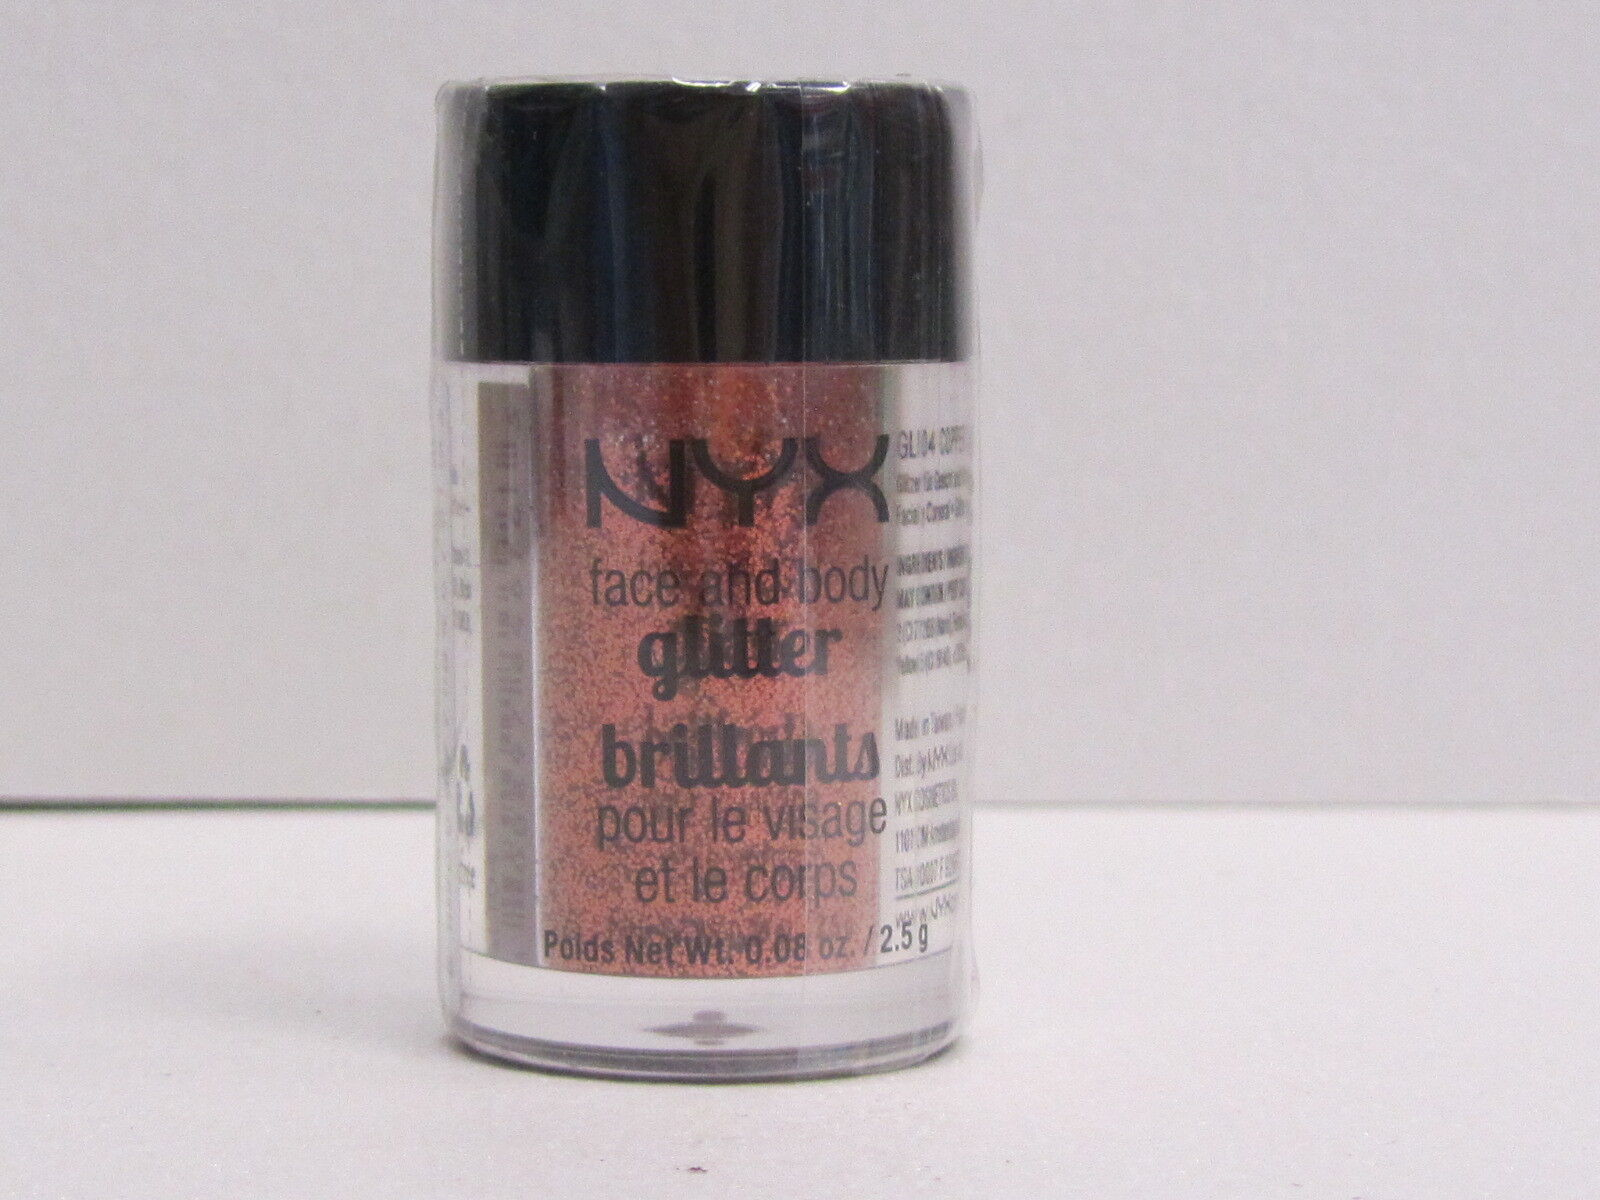 NYX Face and Body Glitter color GLI04 Copper 0.08 oz Brand New With Sealed